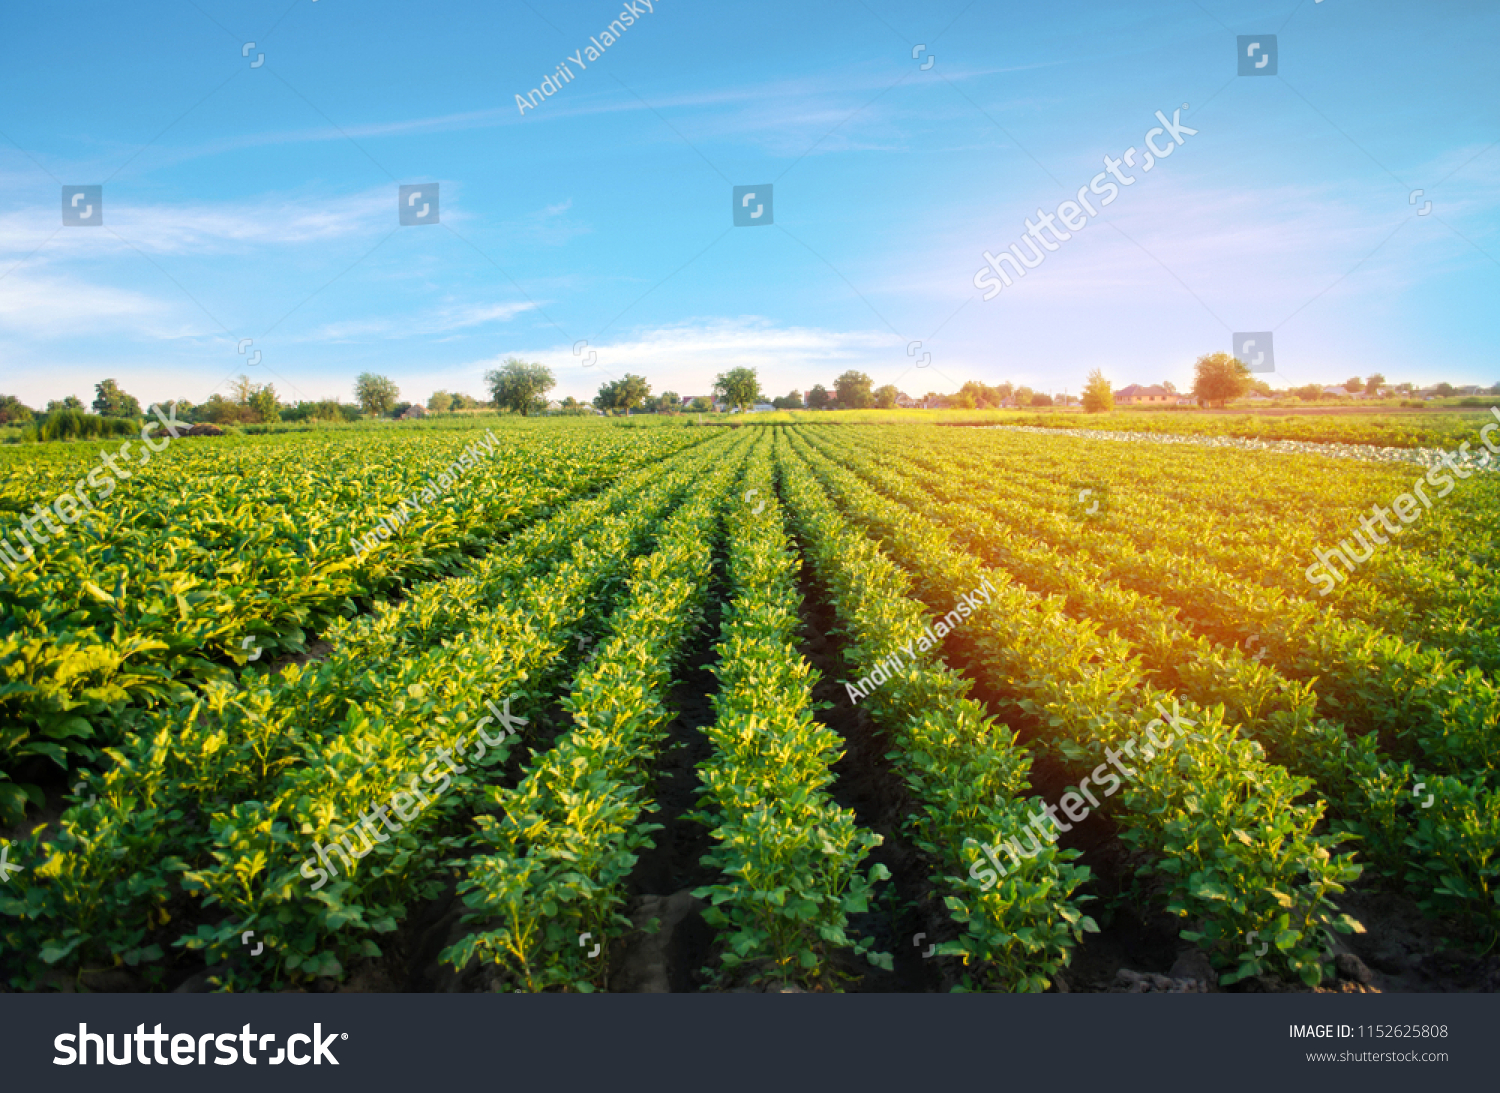 potato plantations grow in the field. vegetable rows. farming, agriculture. Landscape with agricultural land. crops #1152625808